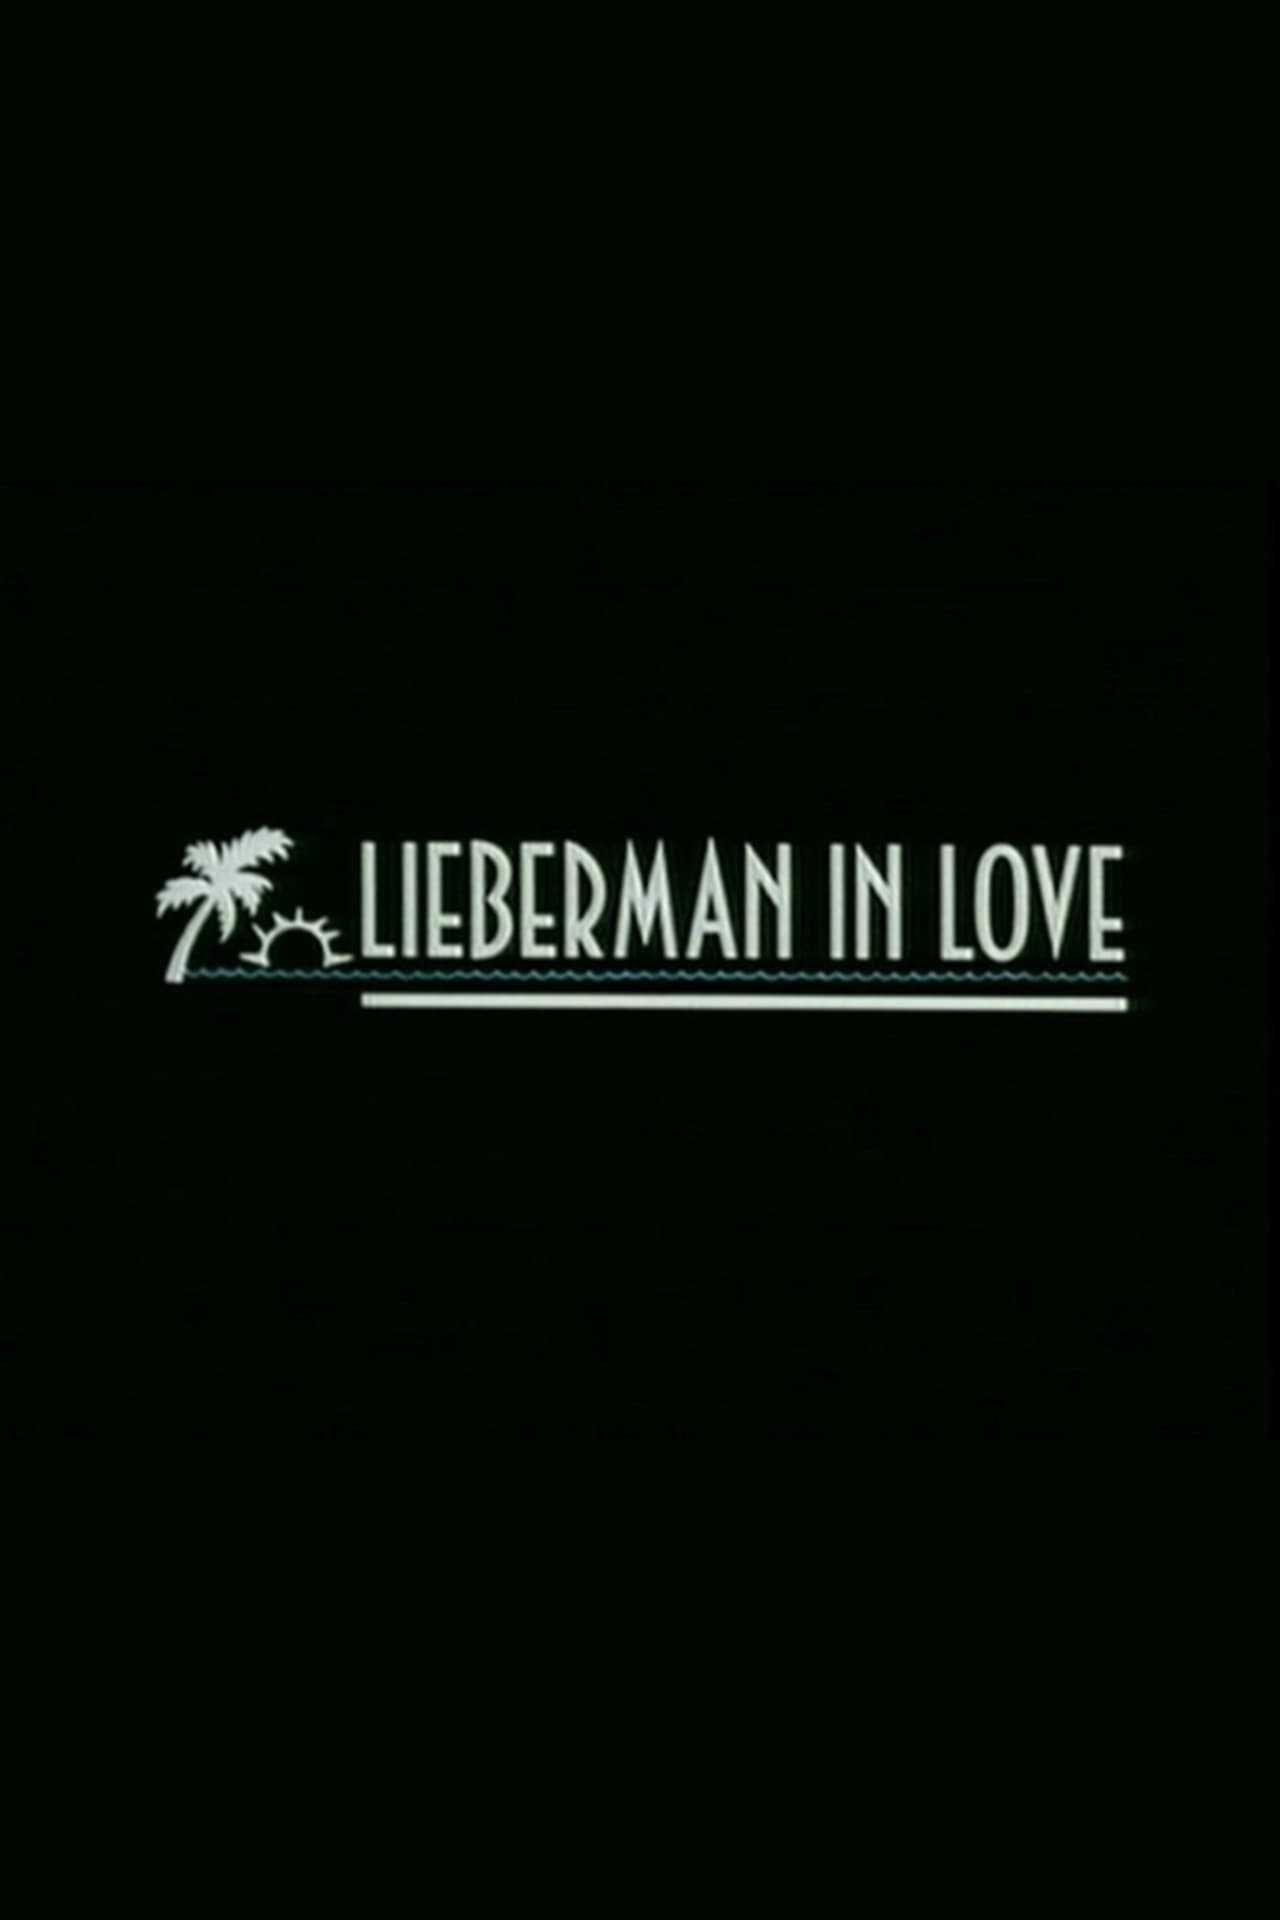 Lieberman in Love